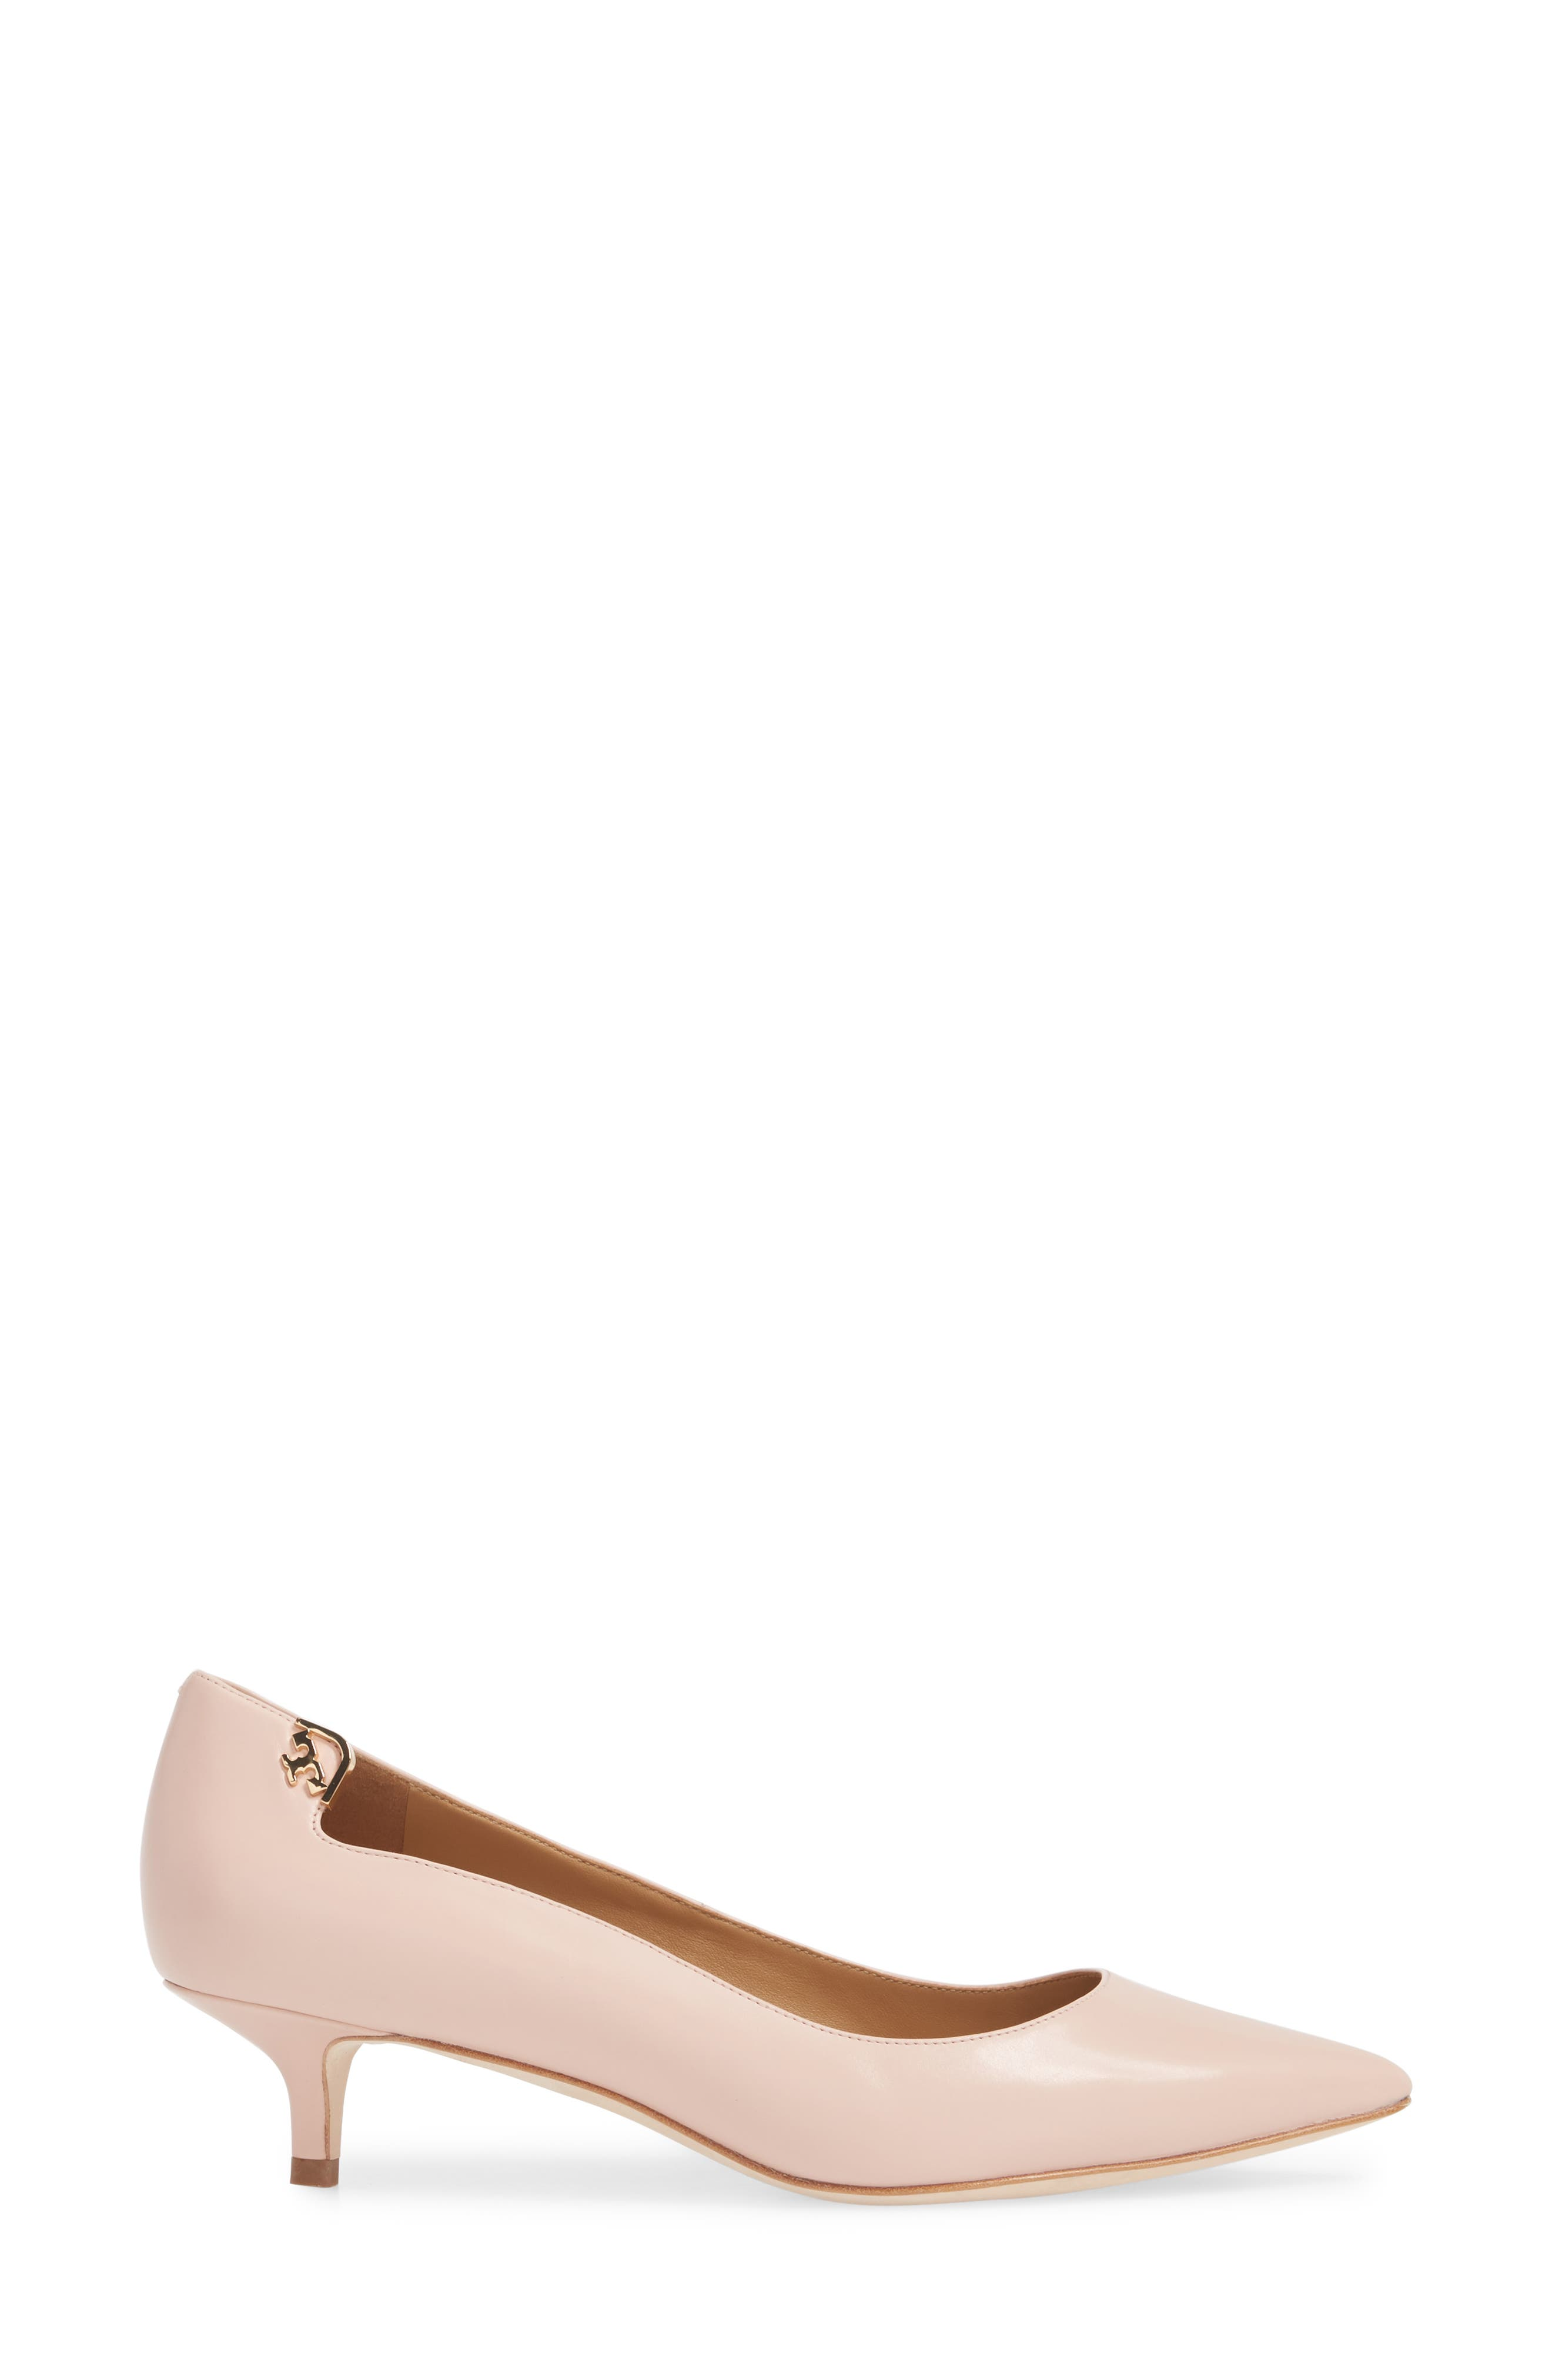 Elizabeth Pointy Toe Pump,                             Alternate thumbnail 3, color,                             Sea Shell Pink